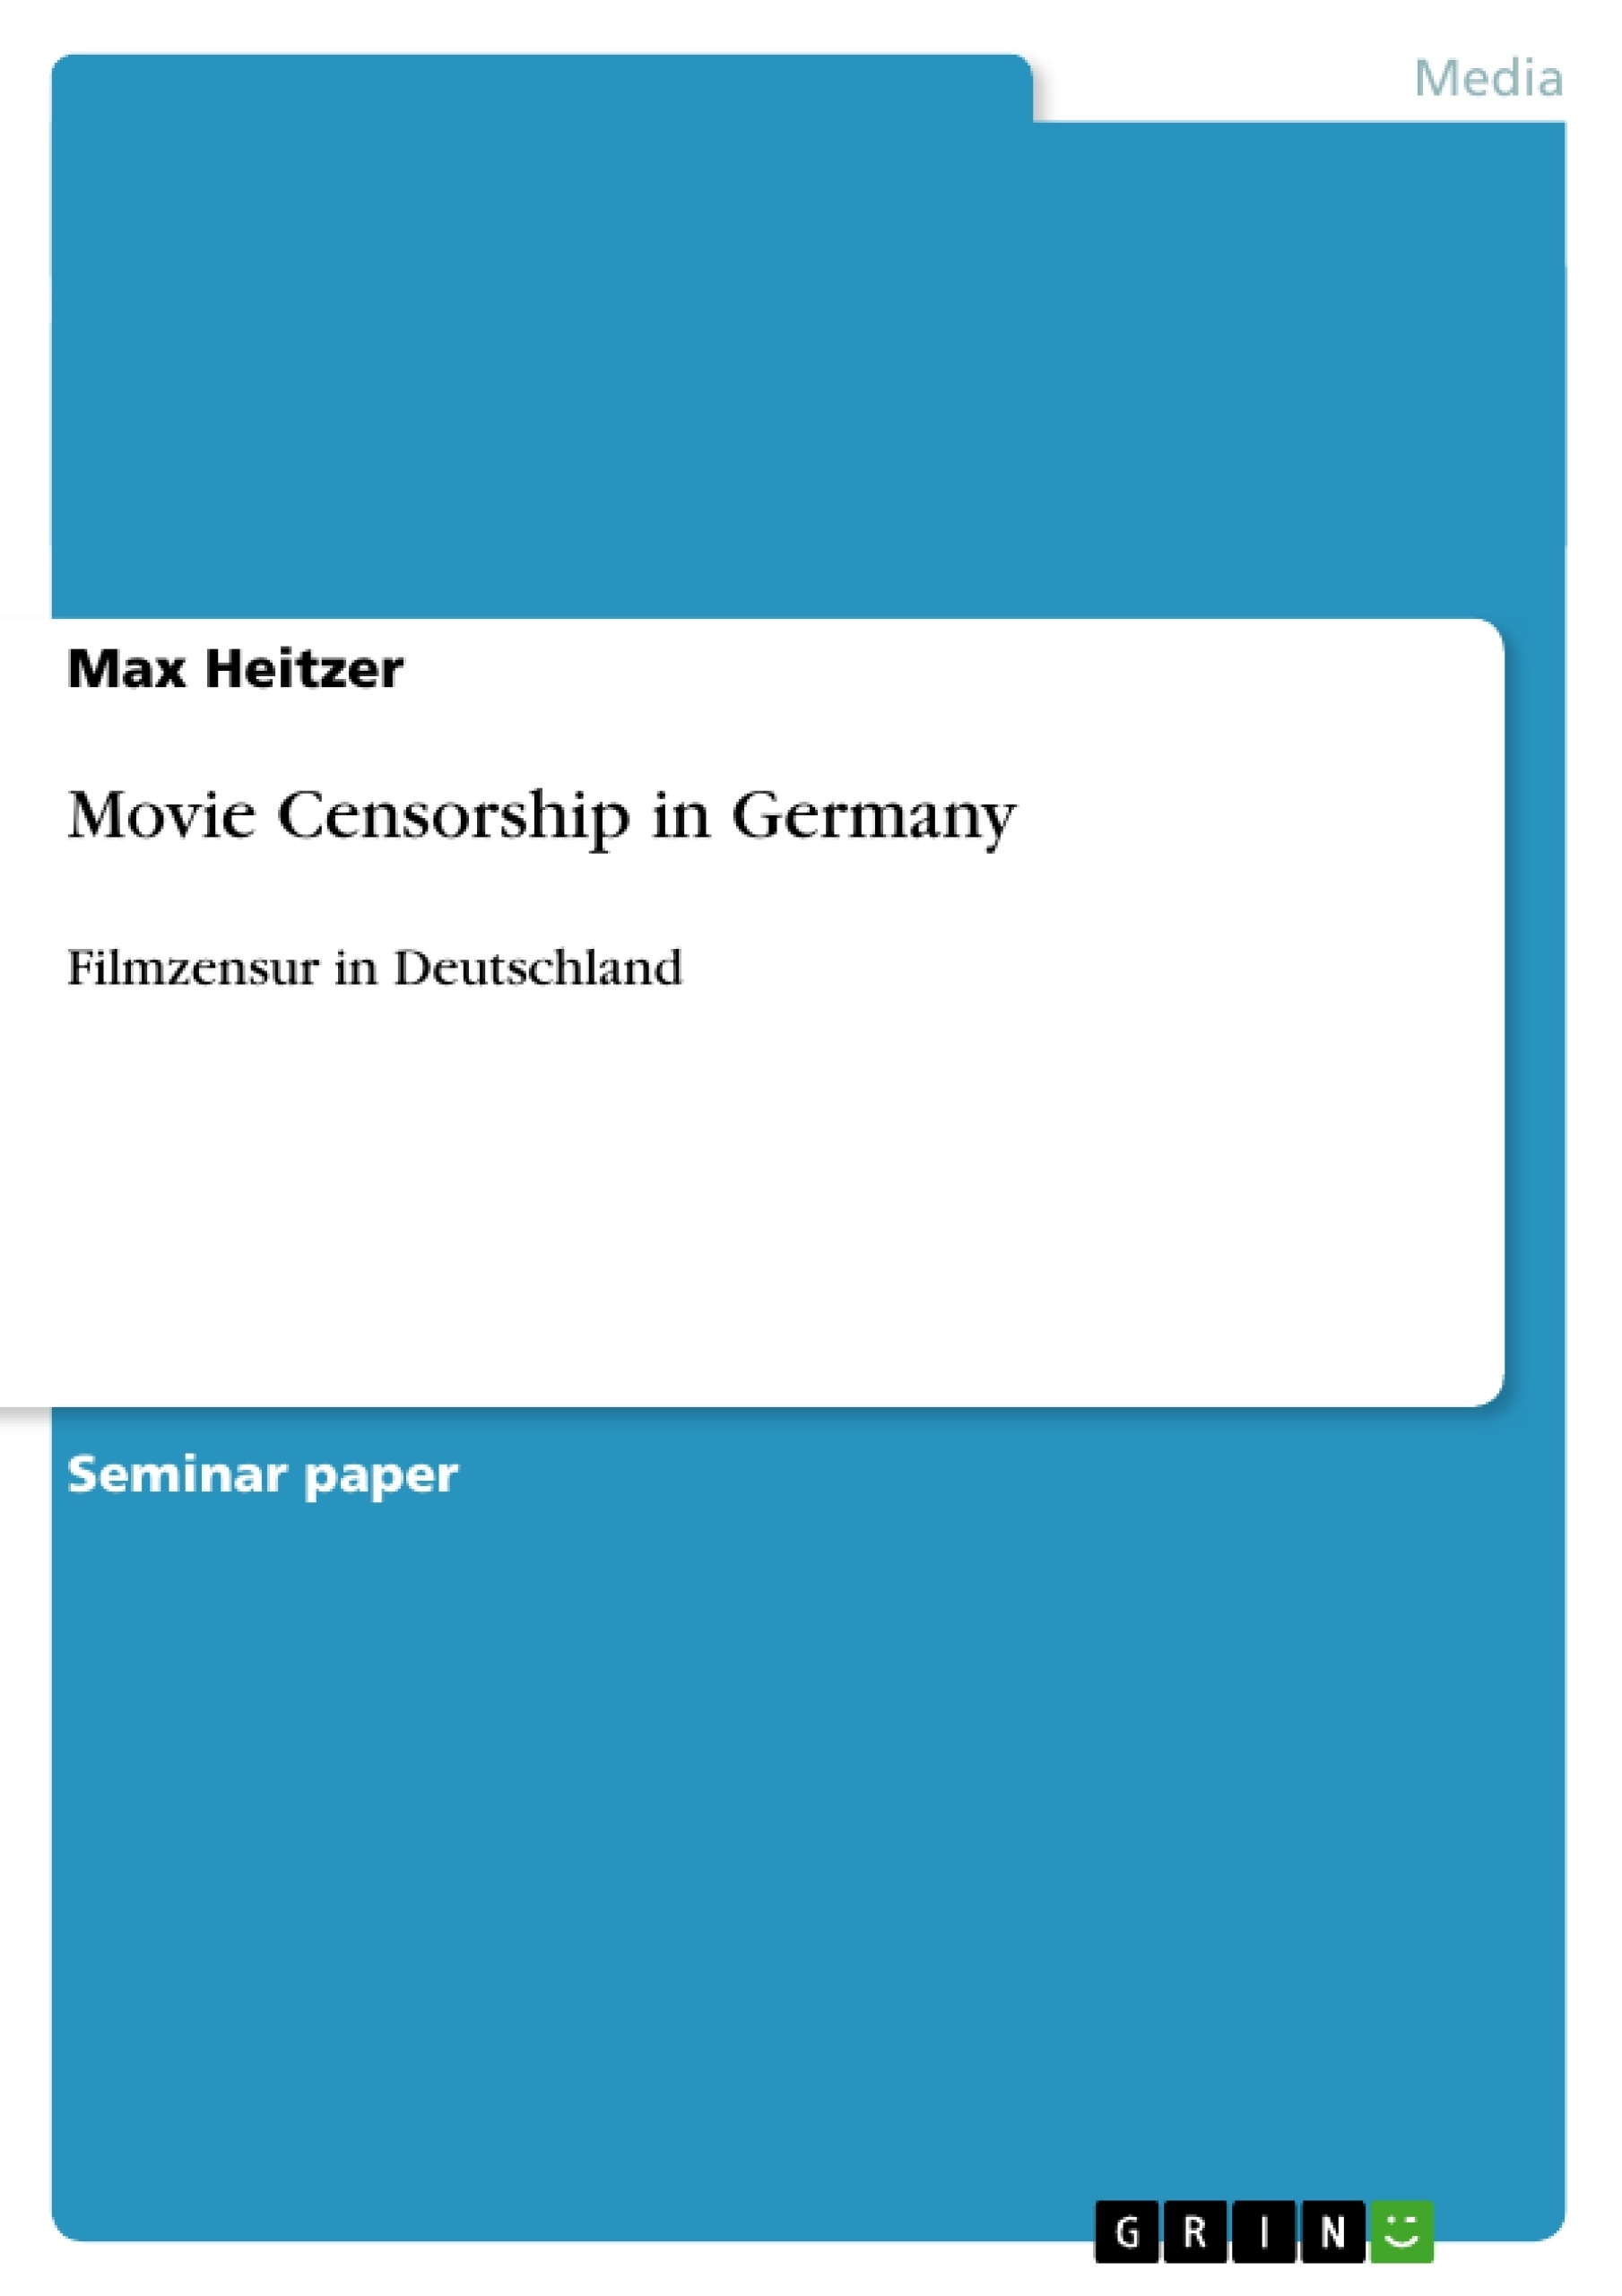 analysis of censorship on literature the With this survey we aim to fill a gap in academic literature regarding internet censorship documented since early analysis of internet censorship (atkins.